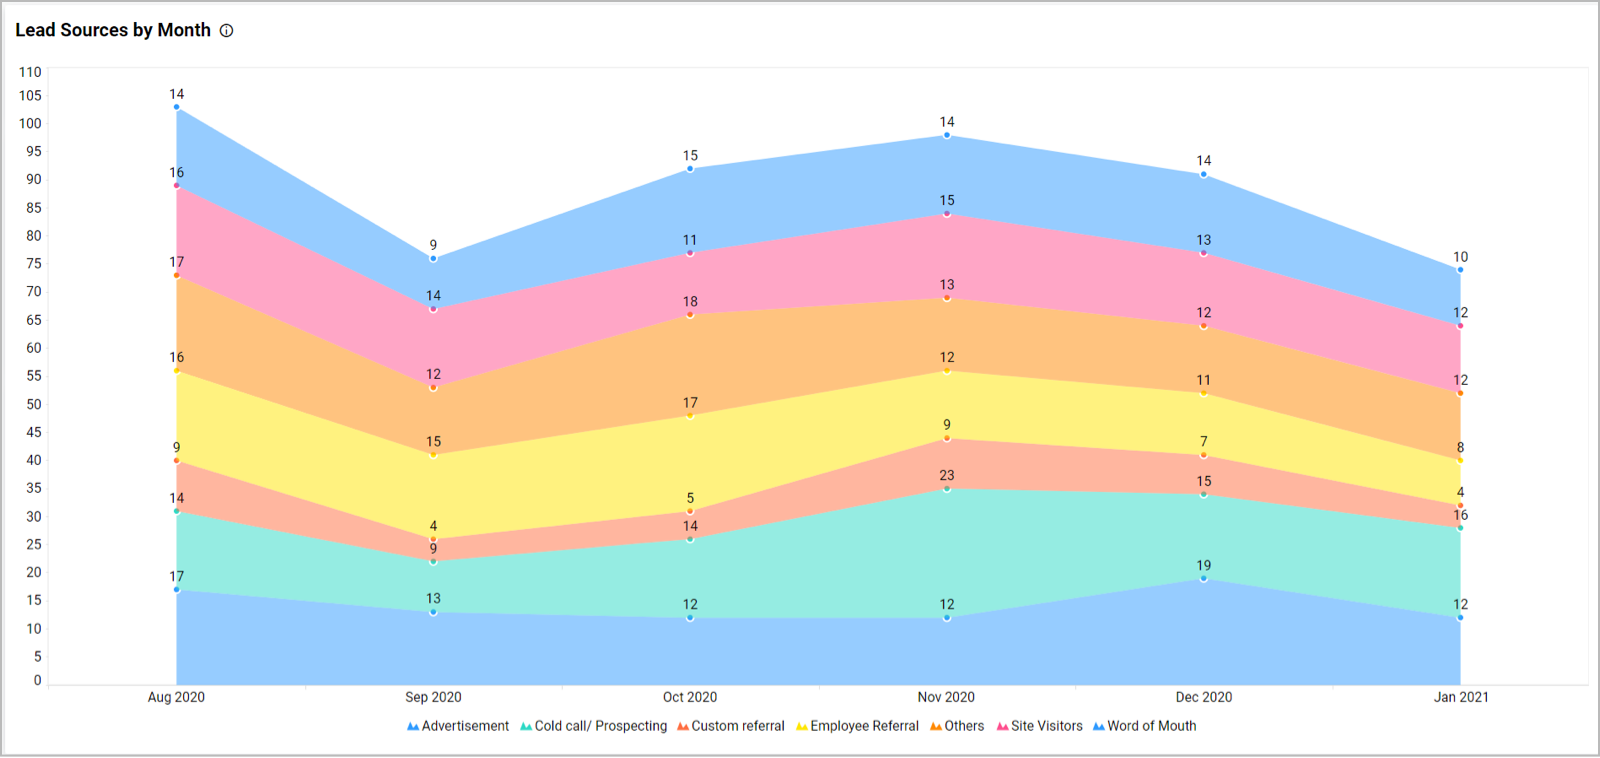 Lead Sources by Month in Sales Marketing Leads Dashboard